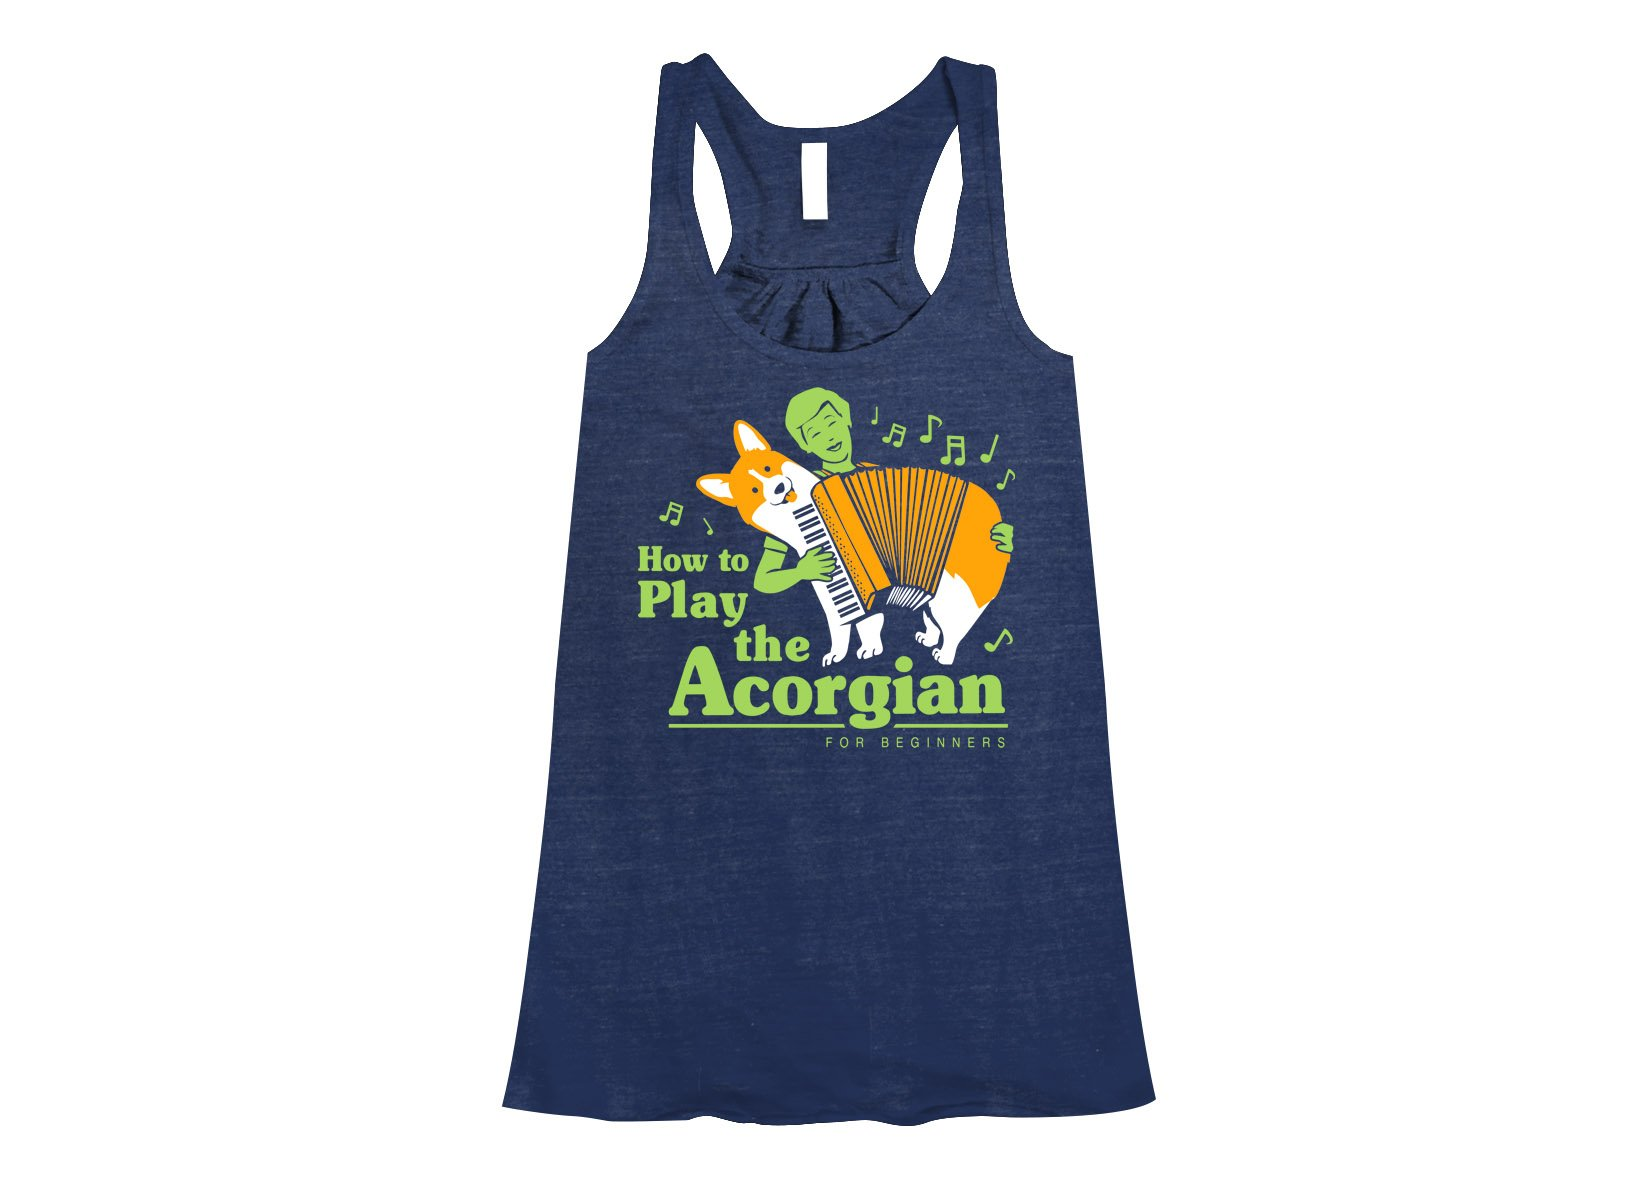 How To Play The Acorgian on Womens Tanks T-Shirt